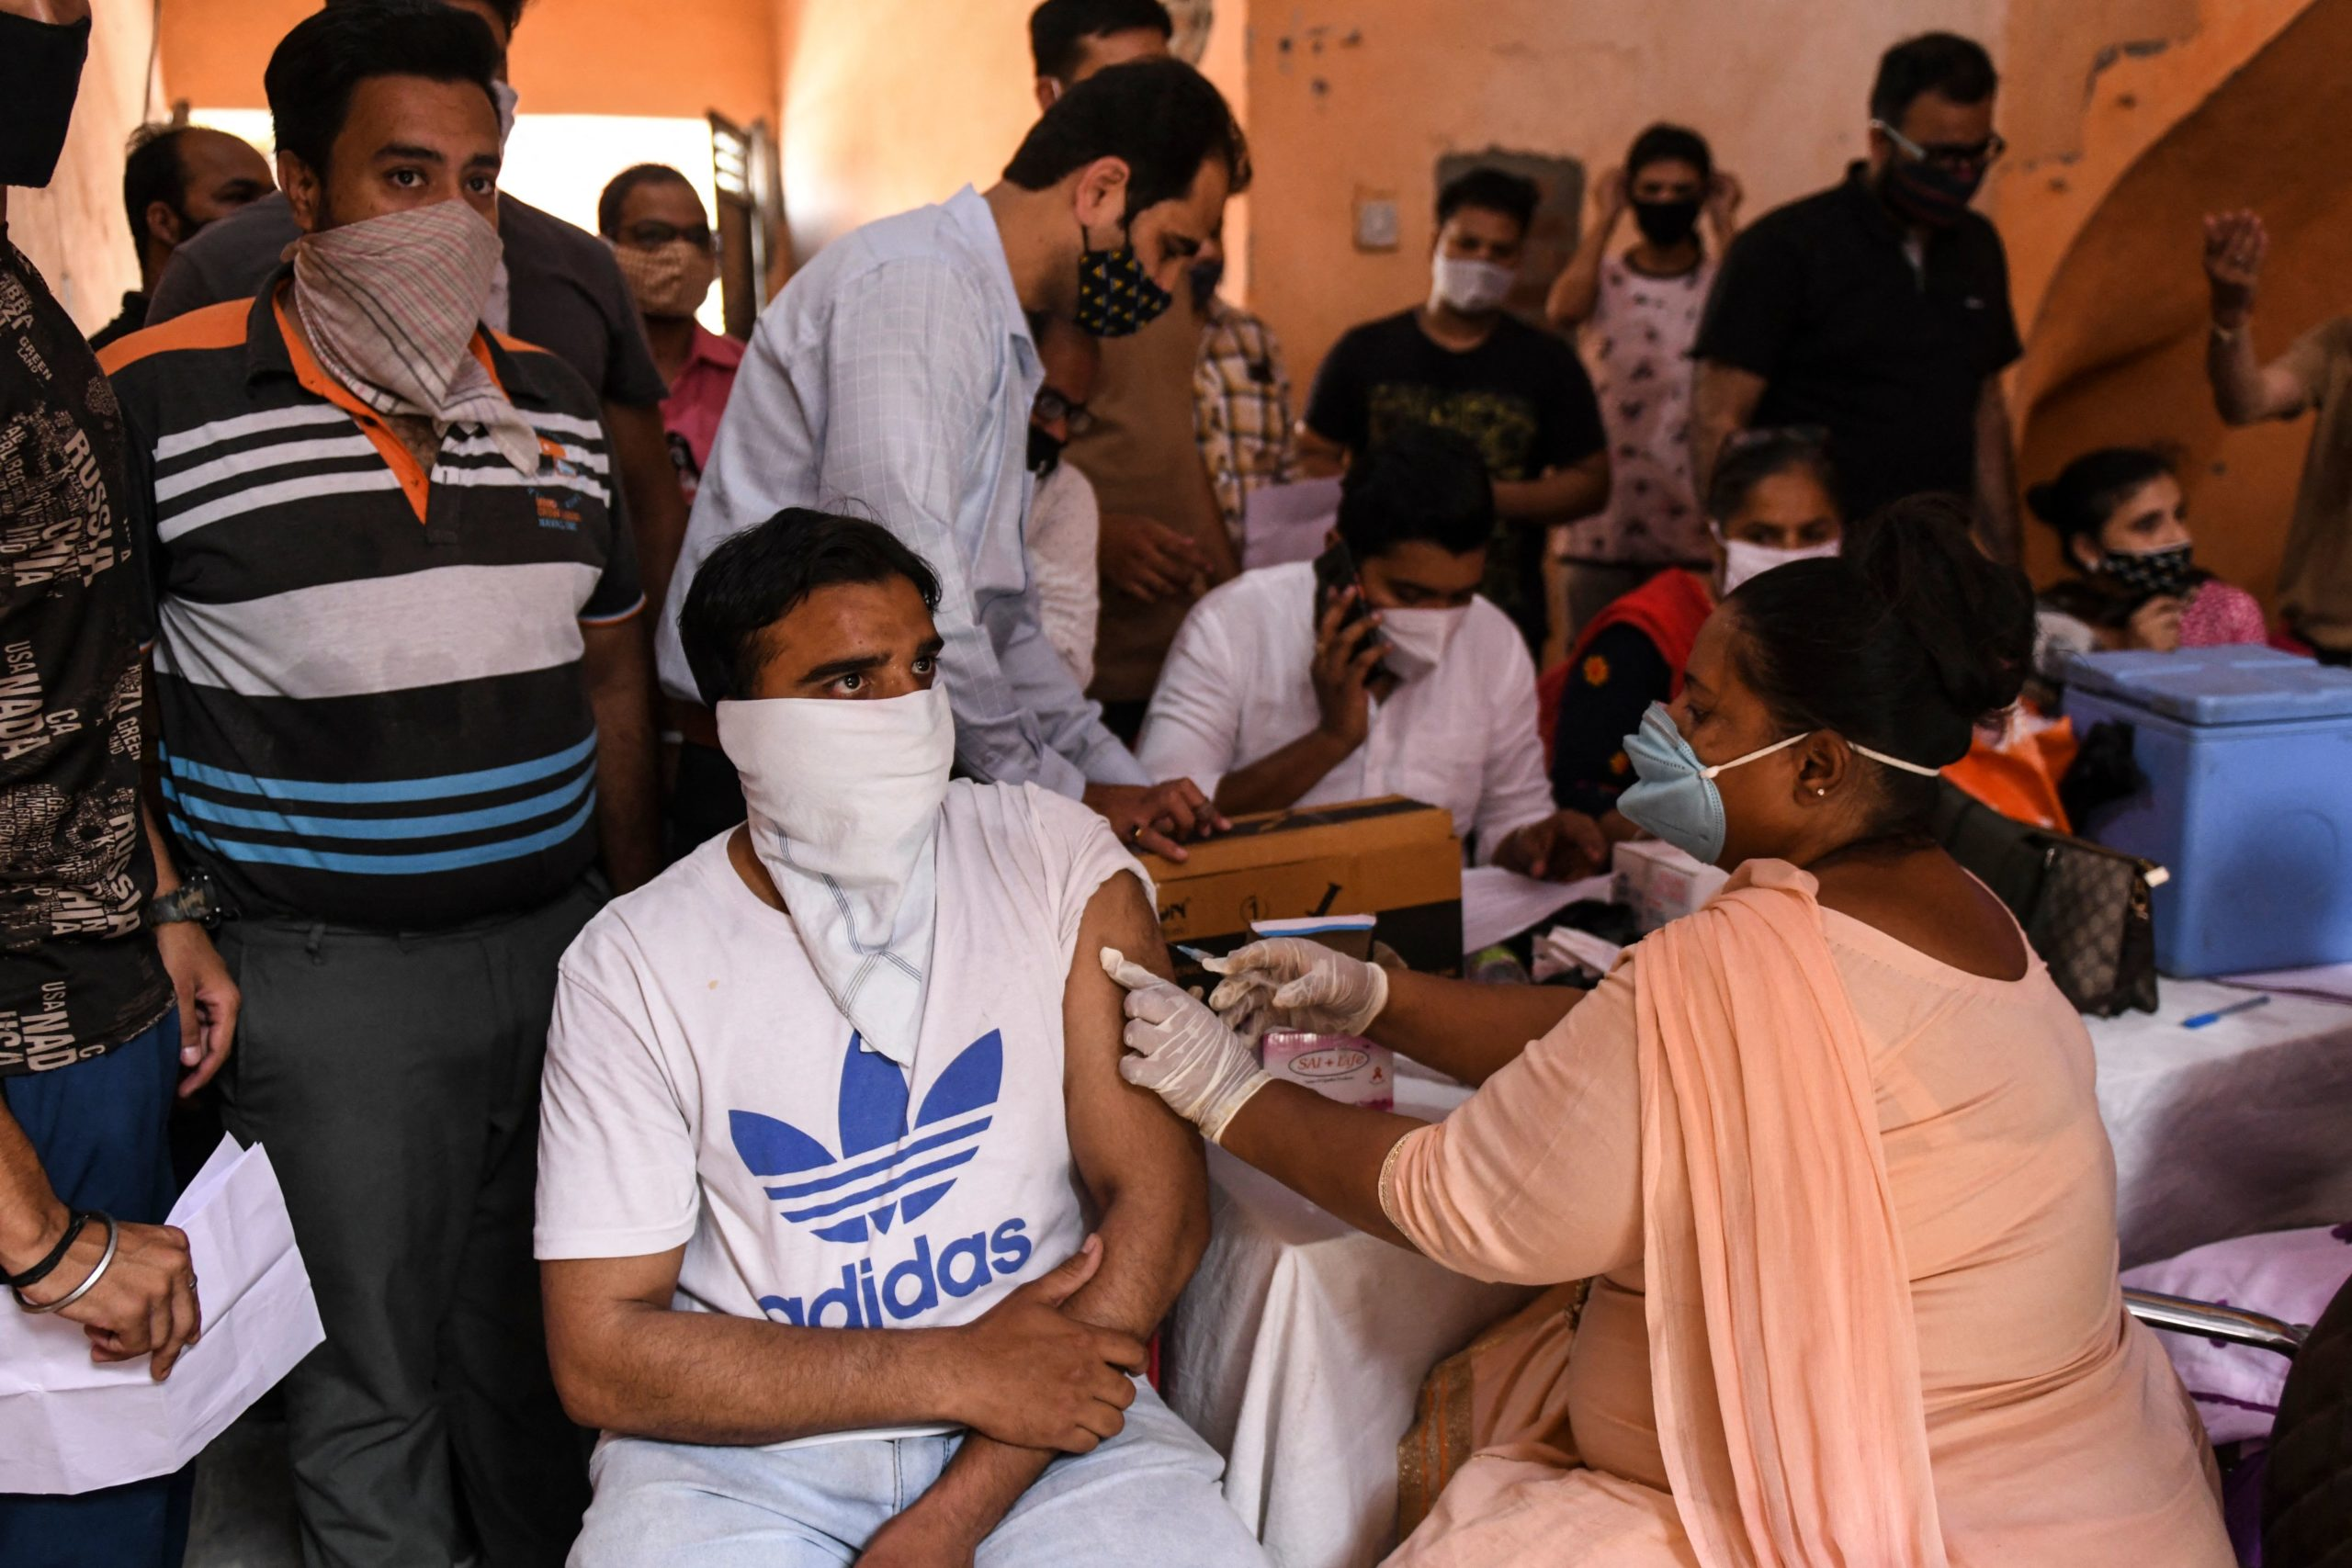 A health worker inoculates a student with a dose of the Covishield vaccine against the Covid-19 coronavirus during a vaccination camp in Amritsar on June 8, 2021. (NARINDER NANU/AFP via Getty Images)